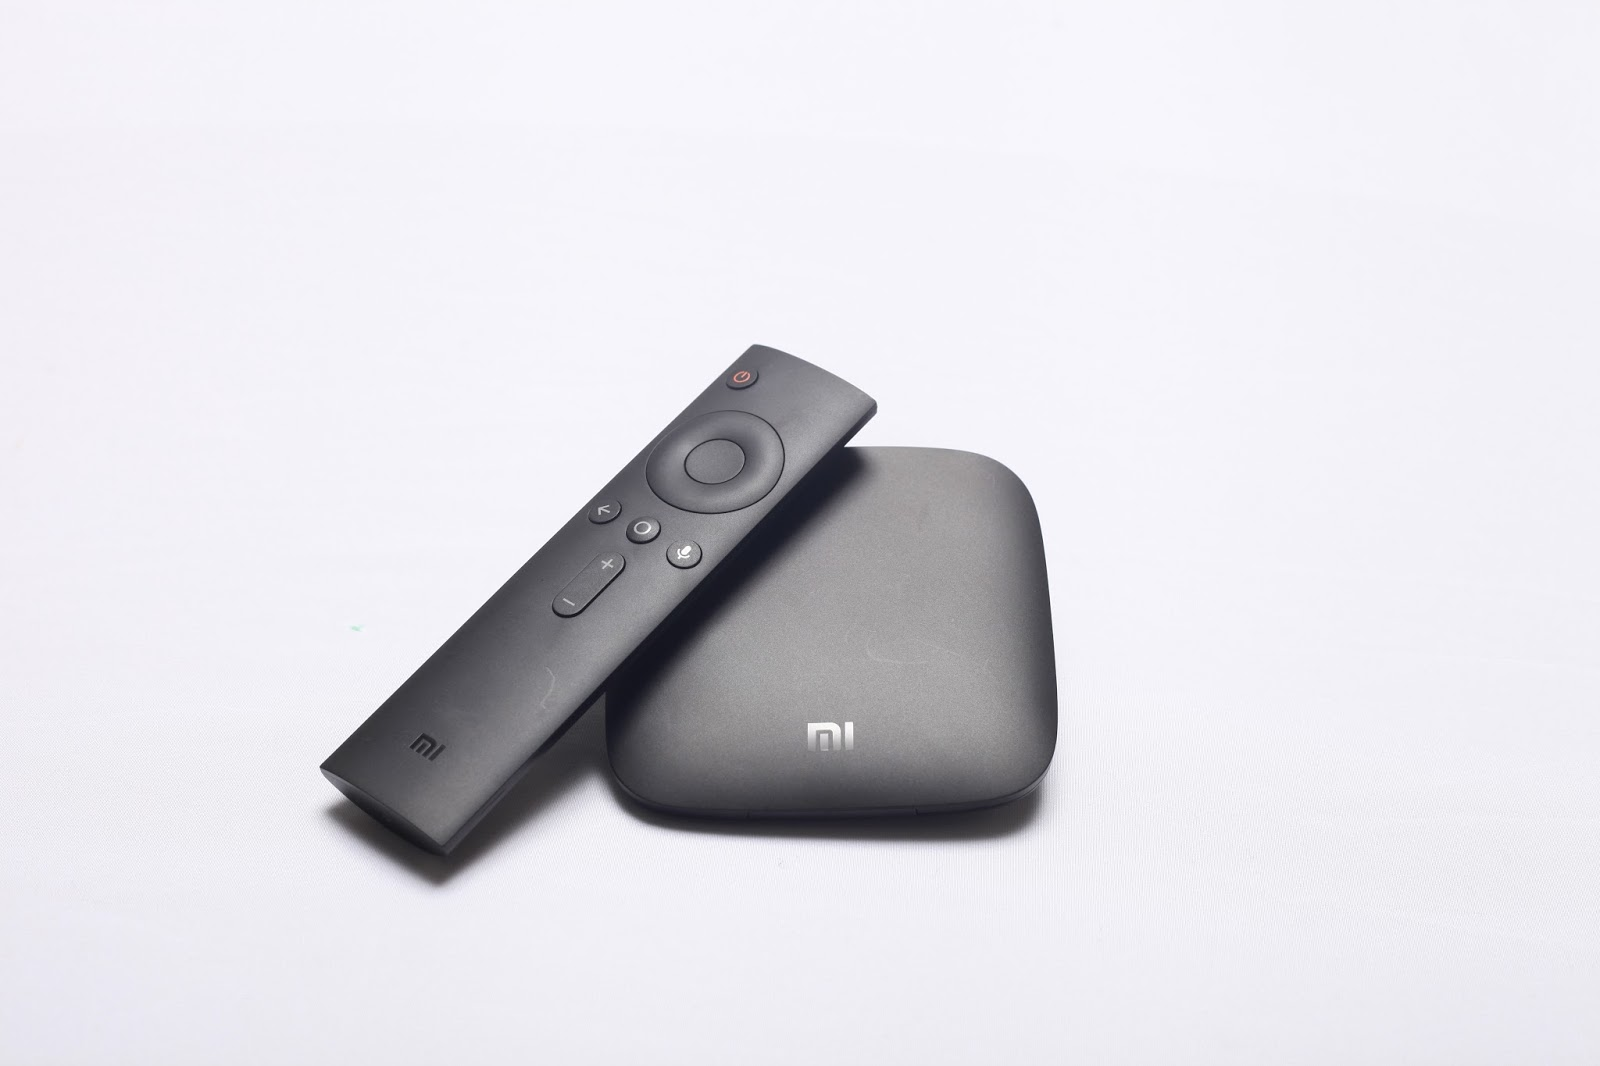 s electrical current broadband plans is forthwith offering the Xiaomi Mi Box  Xiaomi Mi Box Now Available Thru Globe At Home Plans